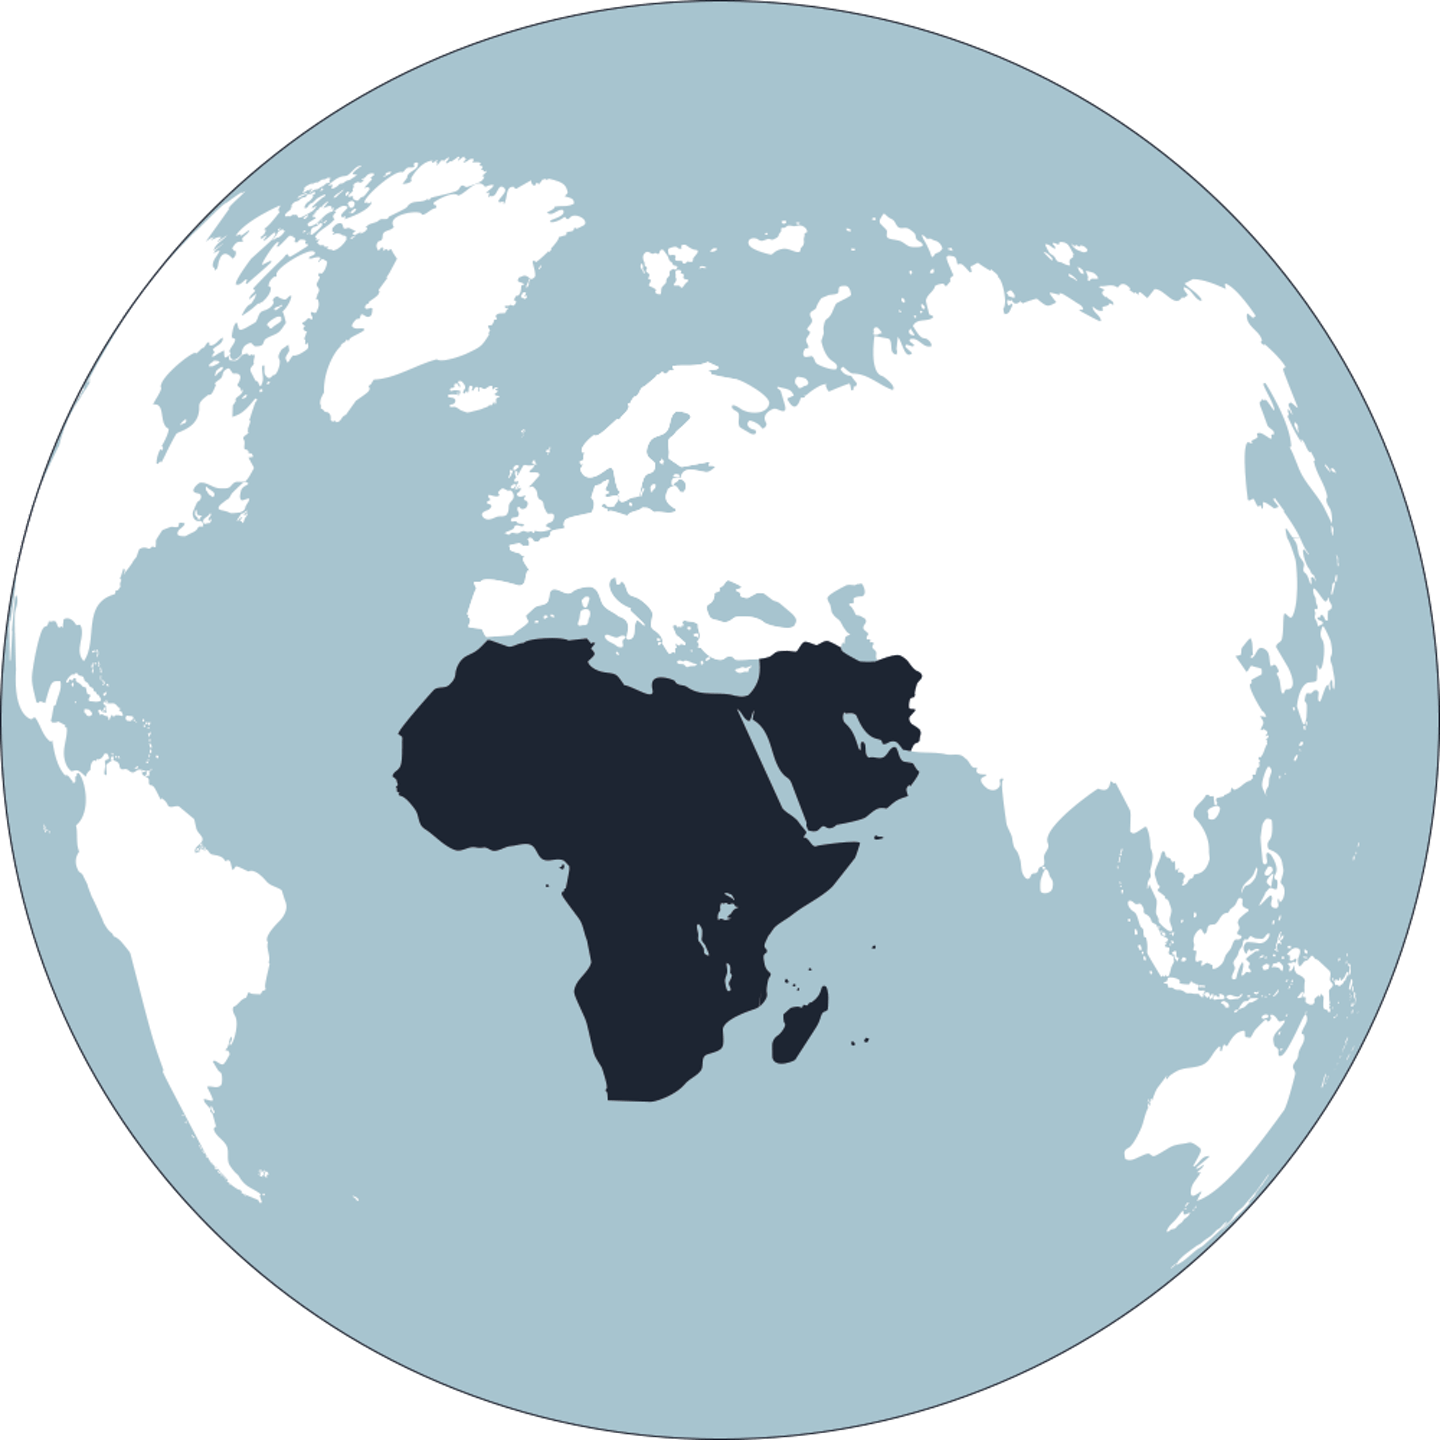 Payment eco-system Middle East Africa